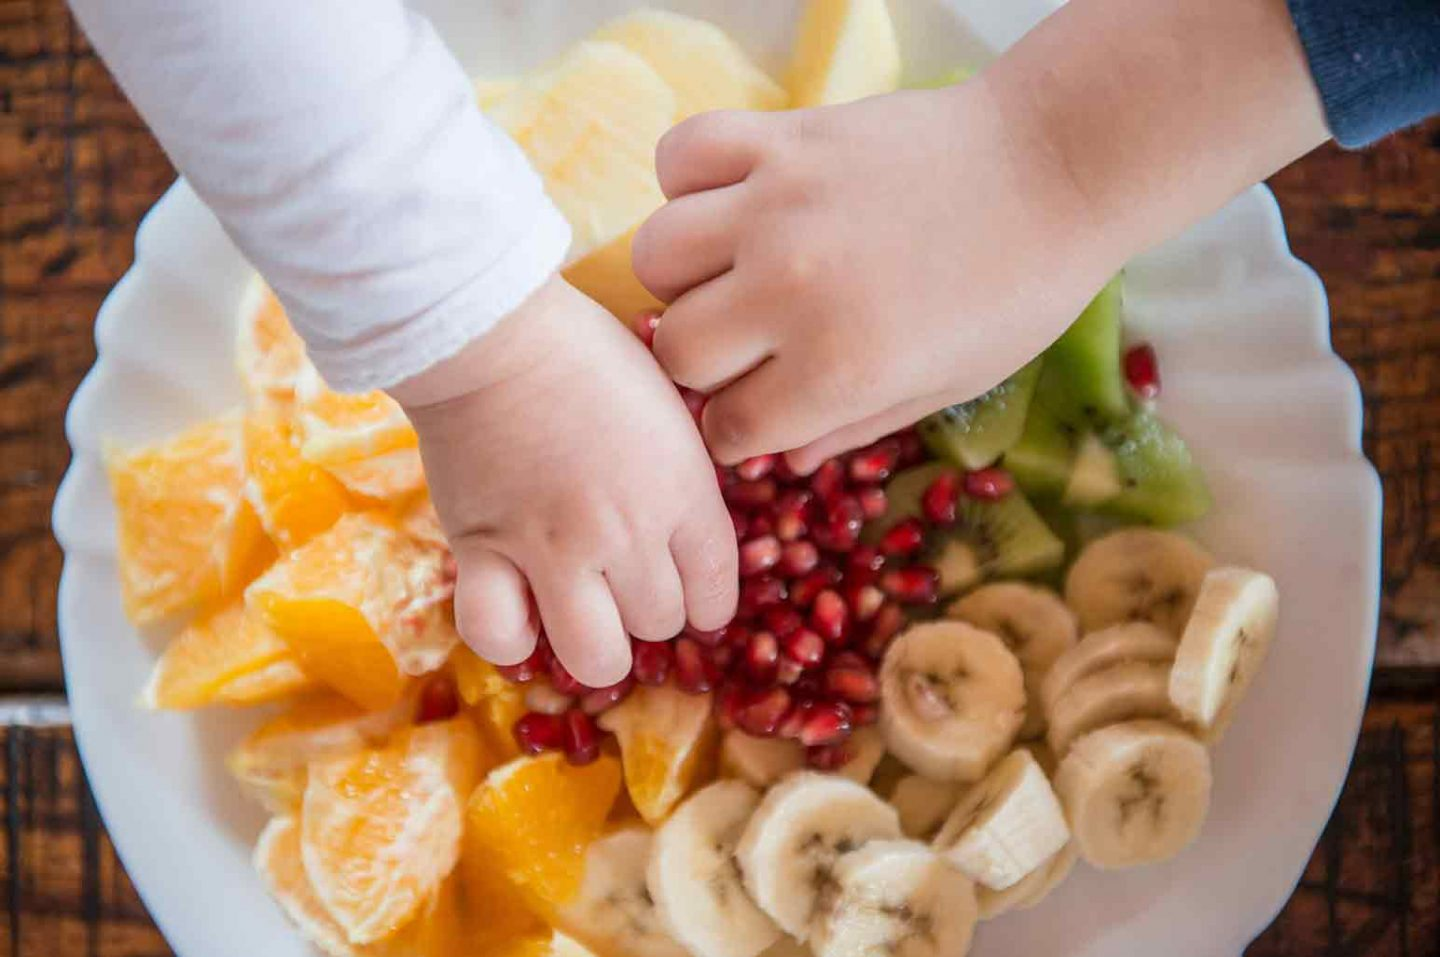 Healthy and Nutritious Snacks for Kids